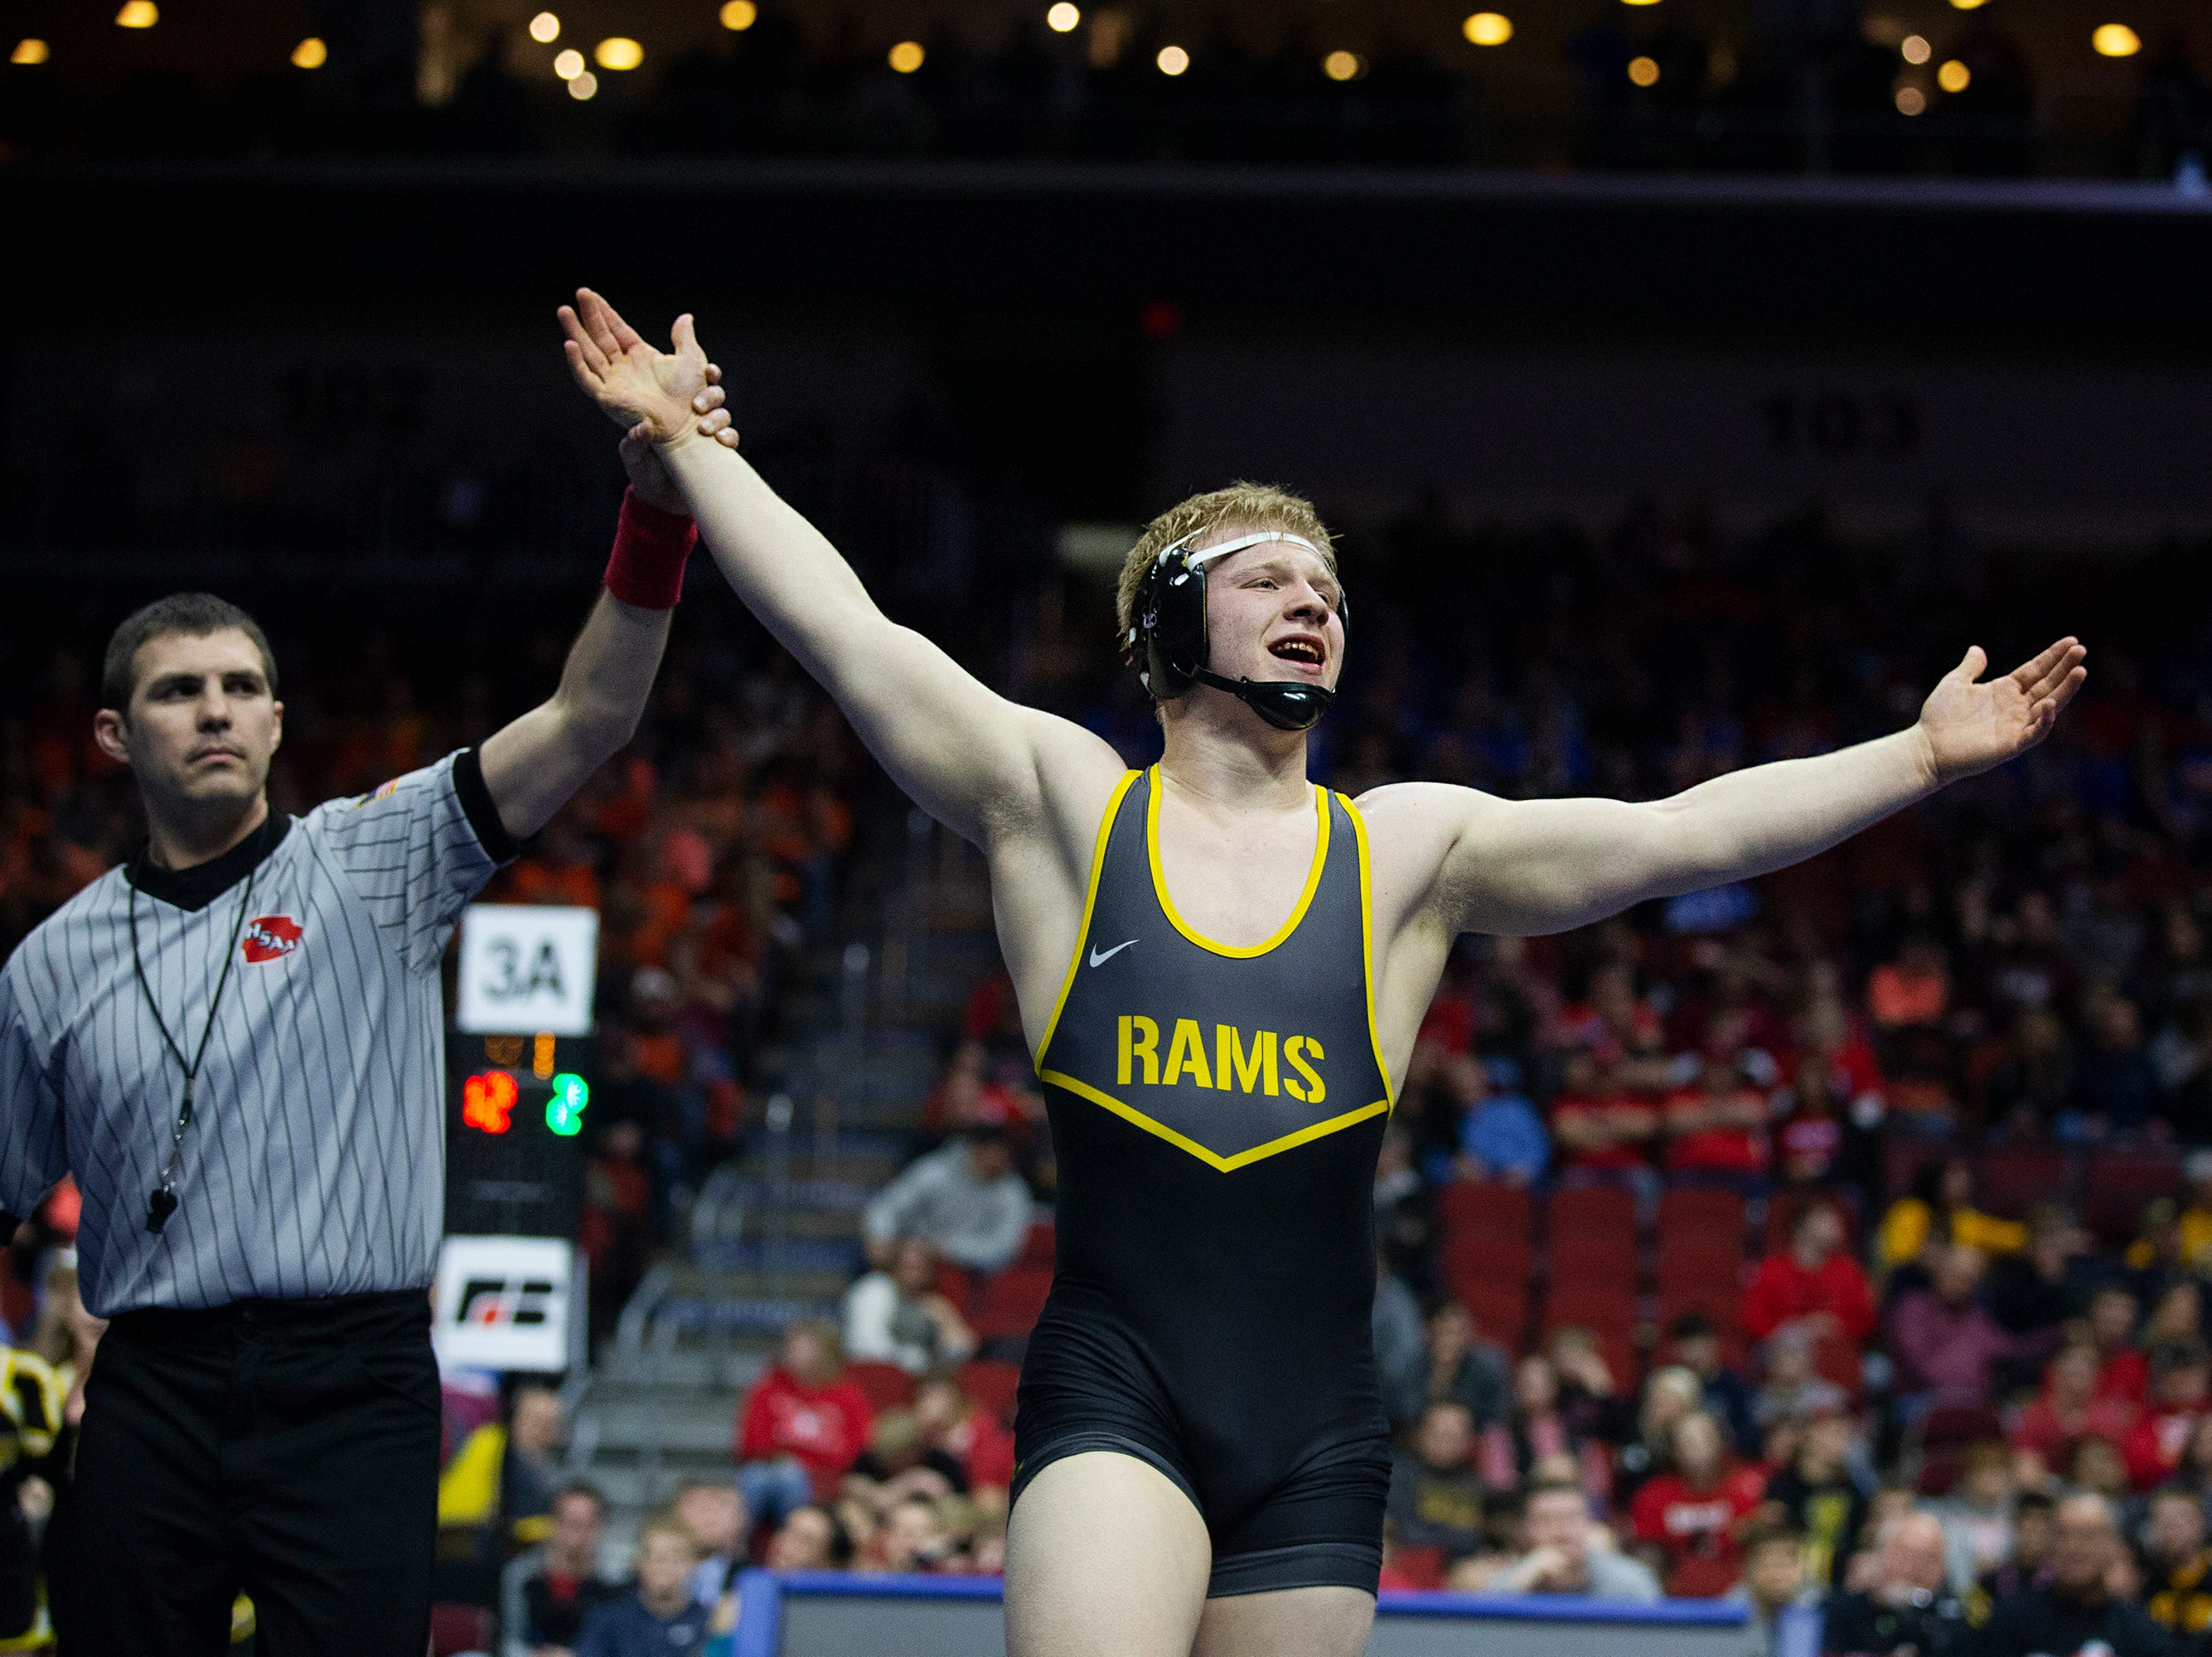 Southeast Polk's Gabe Christenson wins the 195-pound class 3A championship match against Waverly-Shell Rock's Brayden Wolf during the Iowa high school state wrestling tournament on Saturday, FEB.16, 2019, in Wells Fargo Arena.